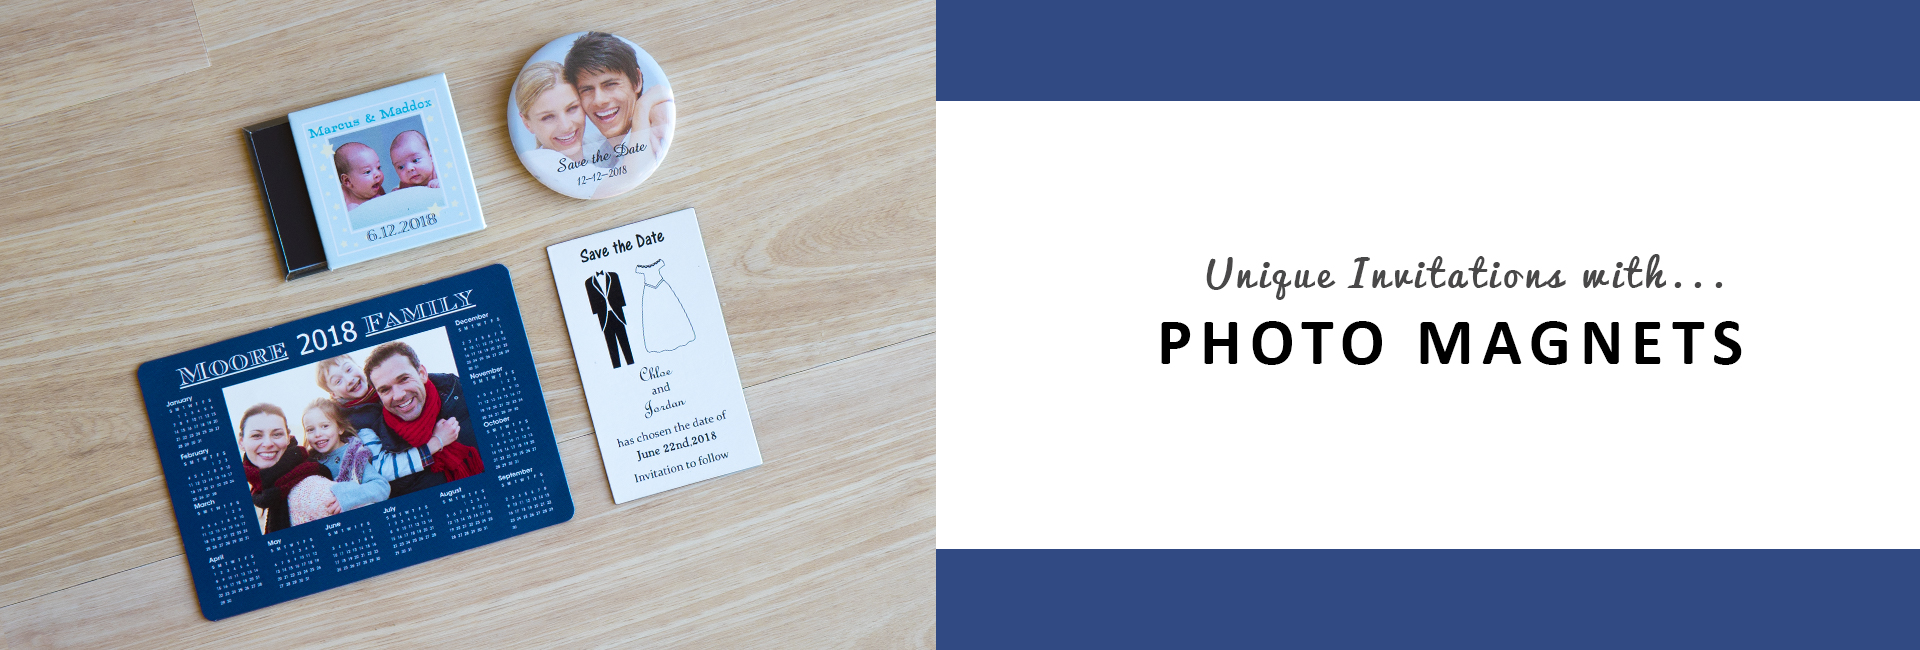 Make Personalized Photo Gifts Online | Printed Cards & Gift Ideas